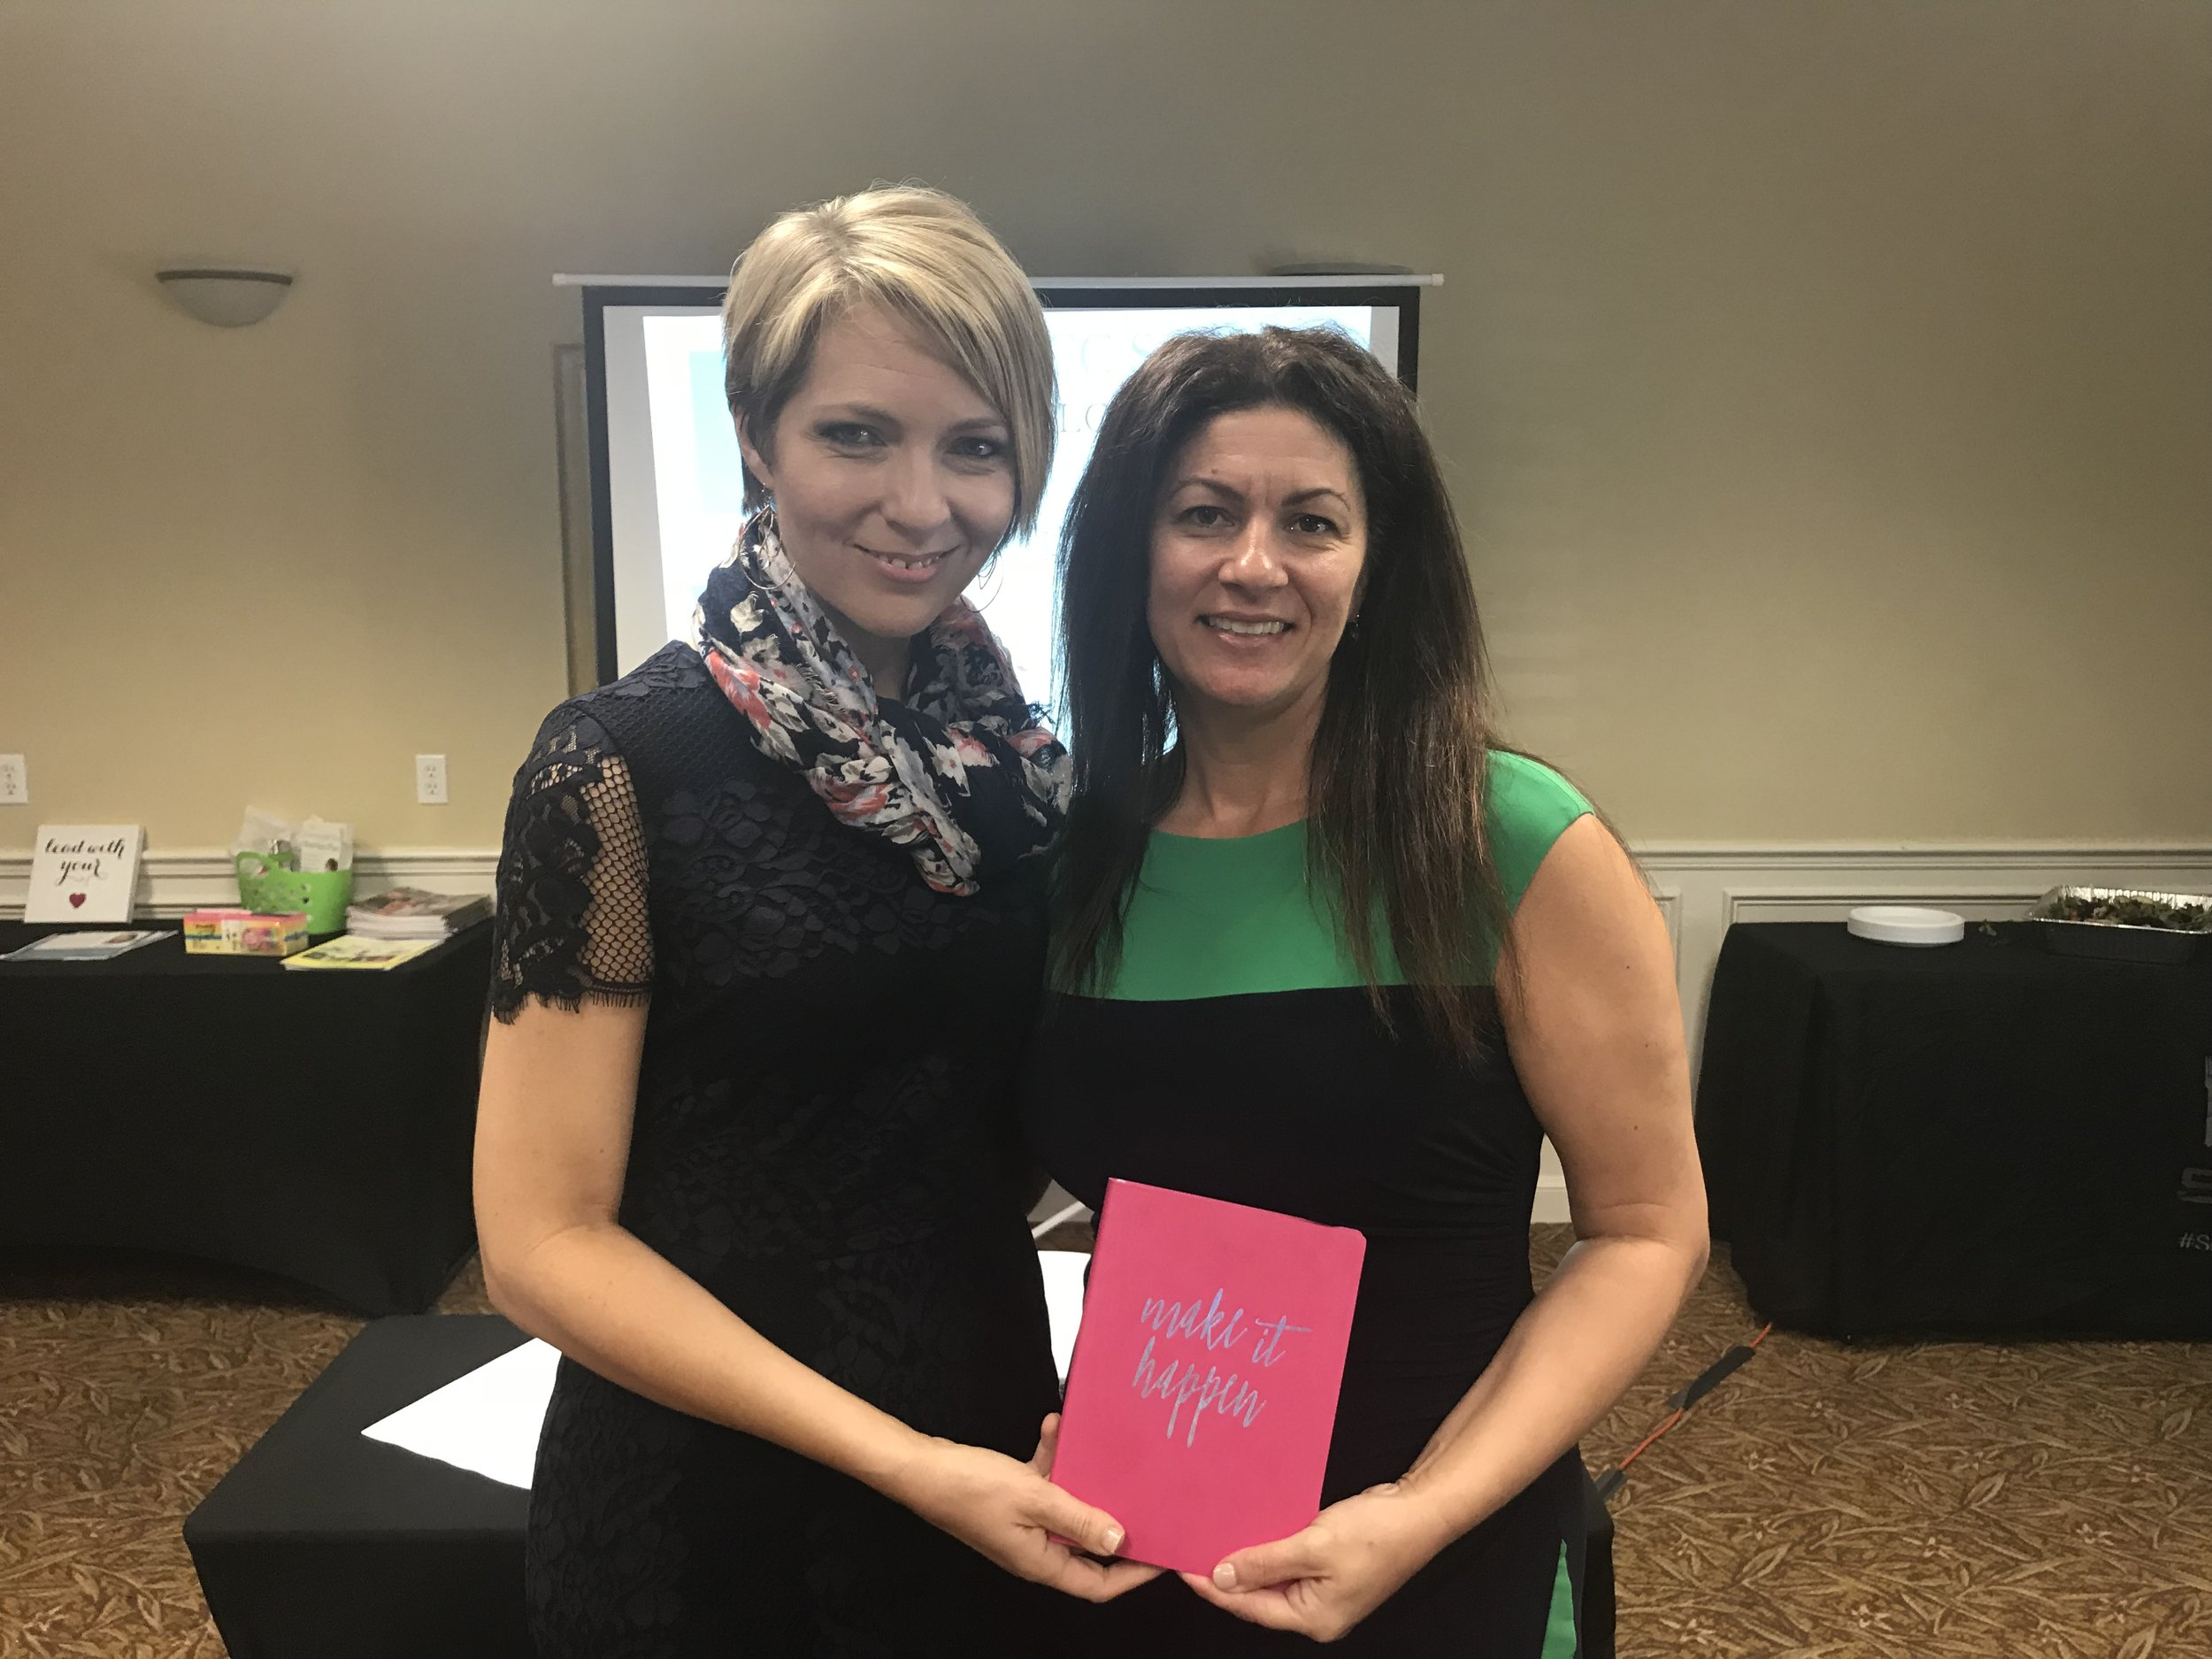 Erica Castner and Melissa Rocchio at the Women's Network of Collier County luncheon on April 10, 2018 in Naples.